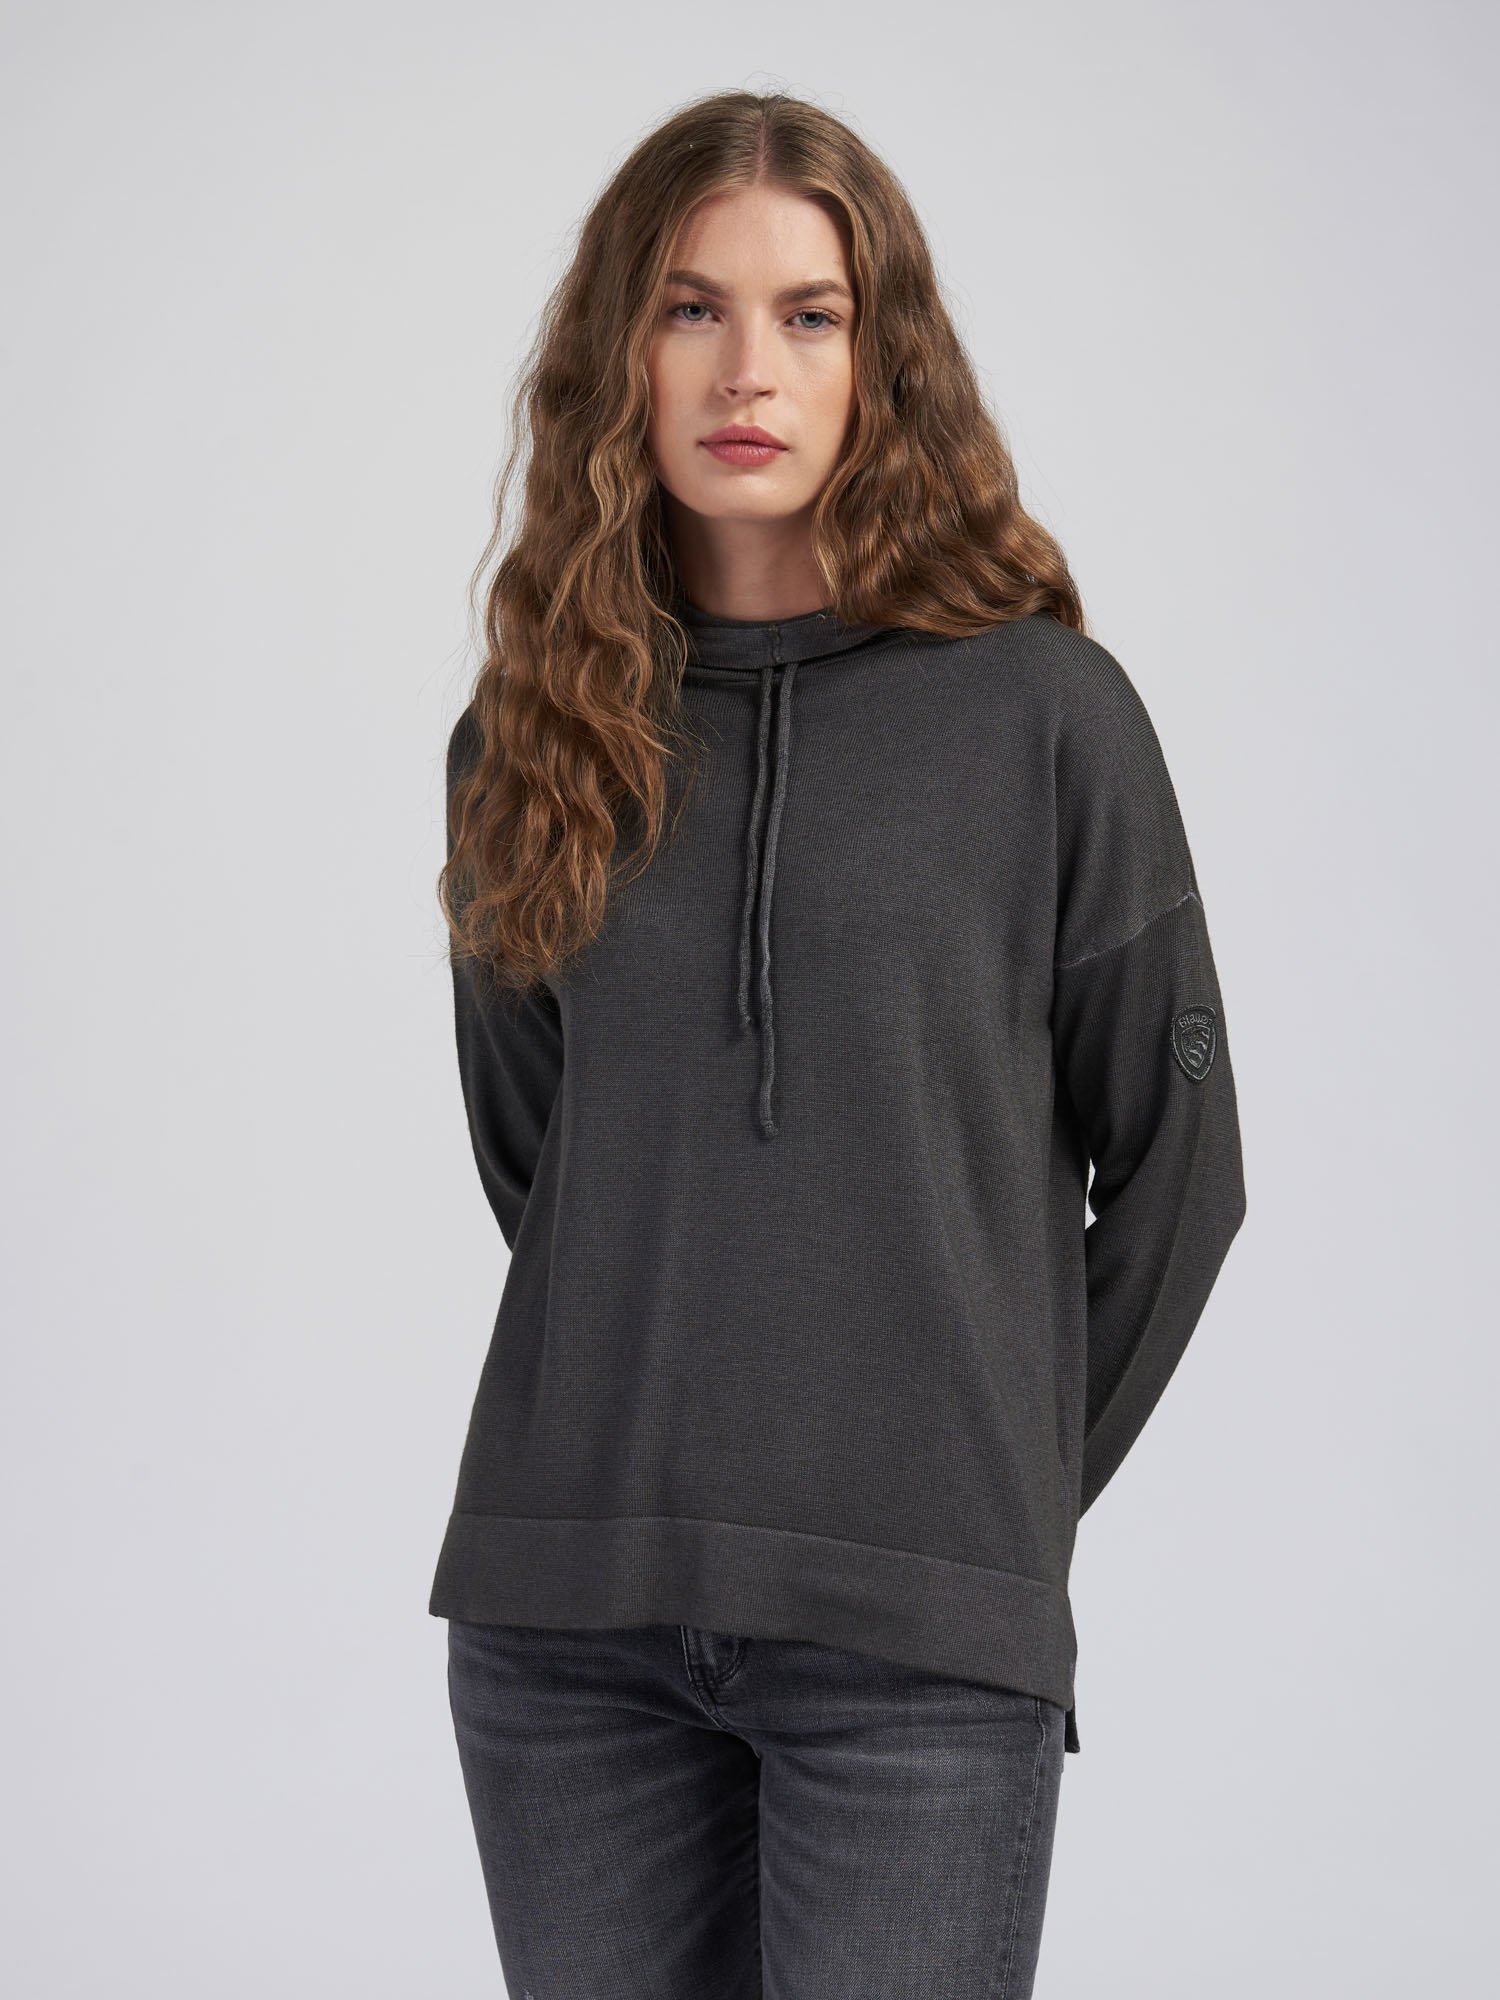 HOODED SWEATER - Blauer